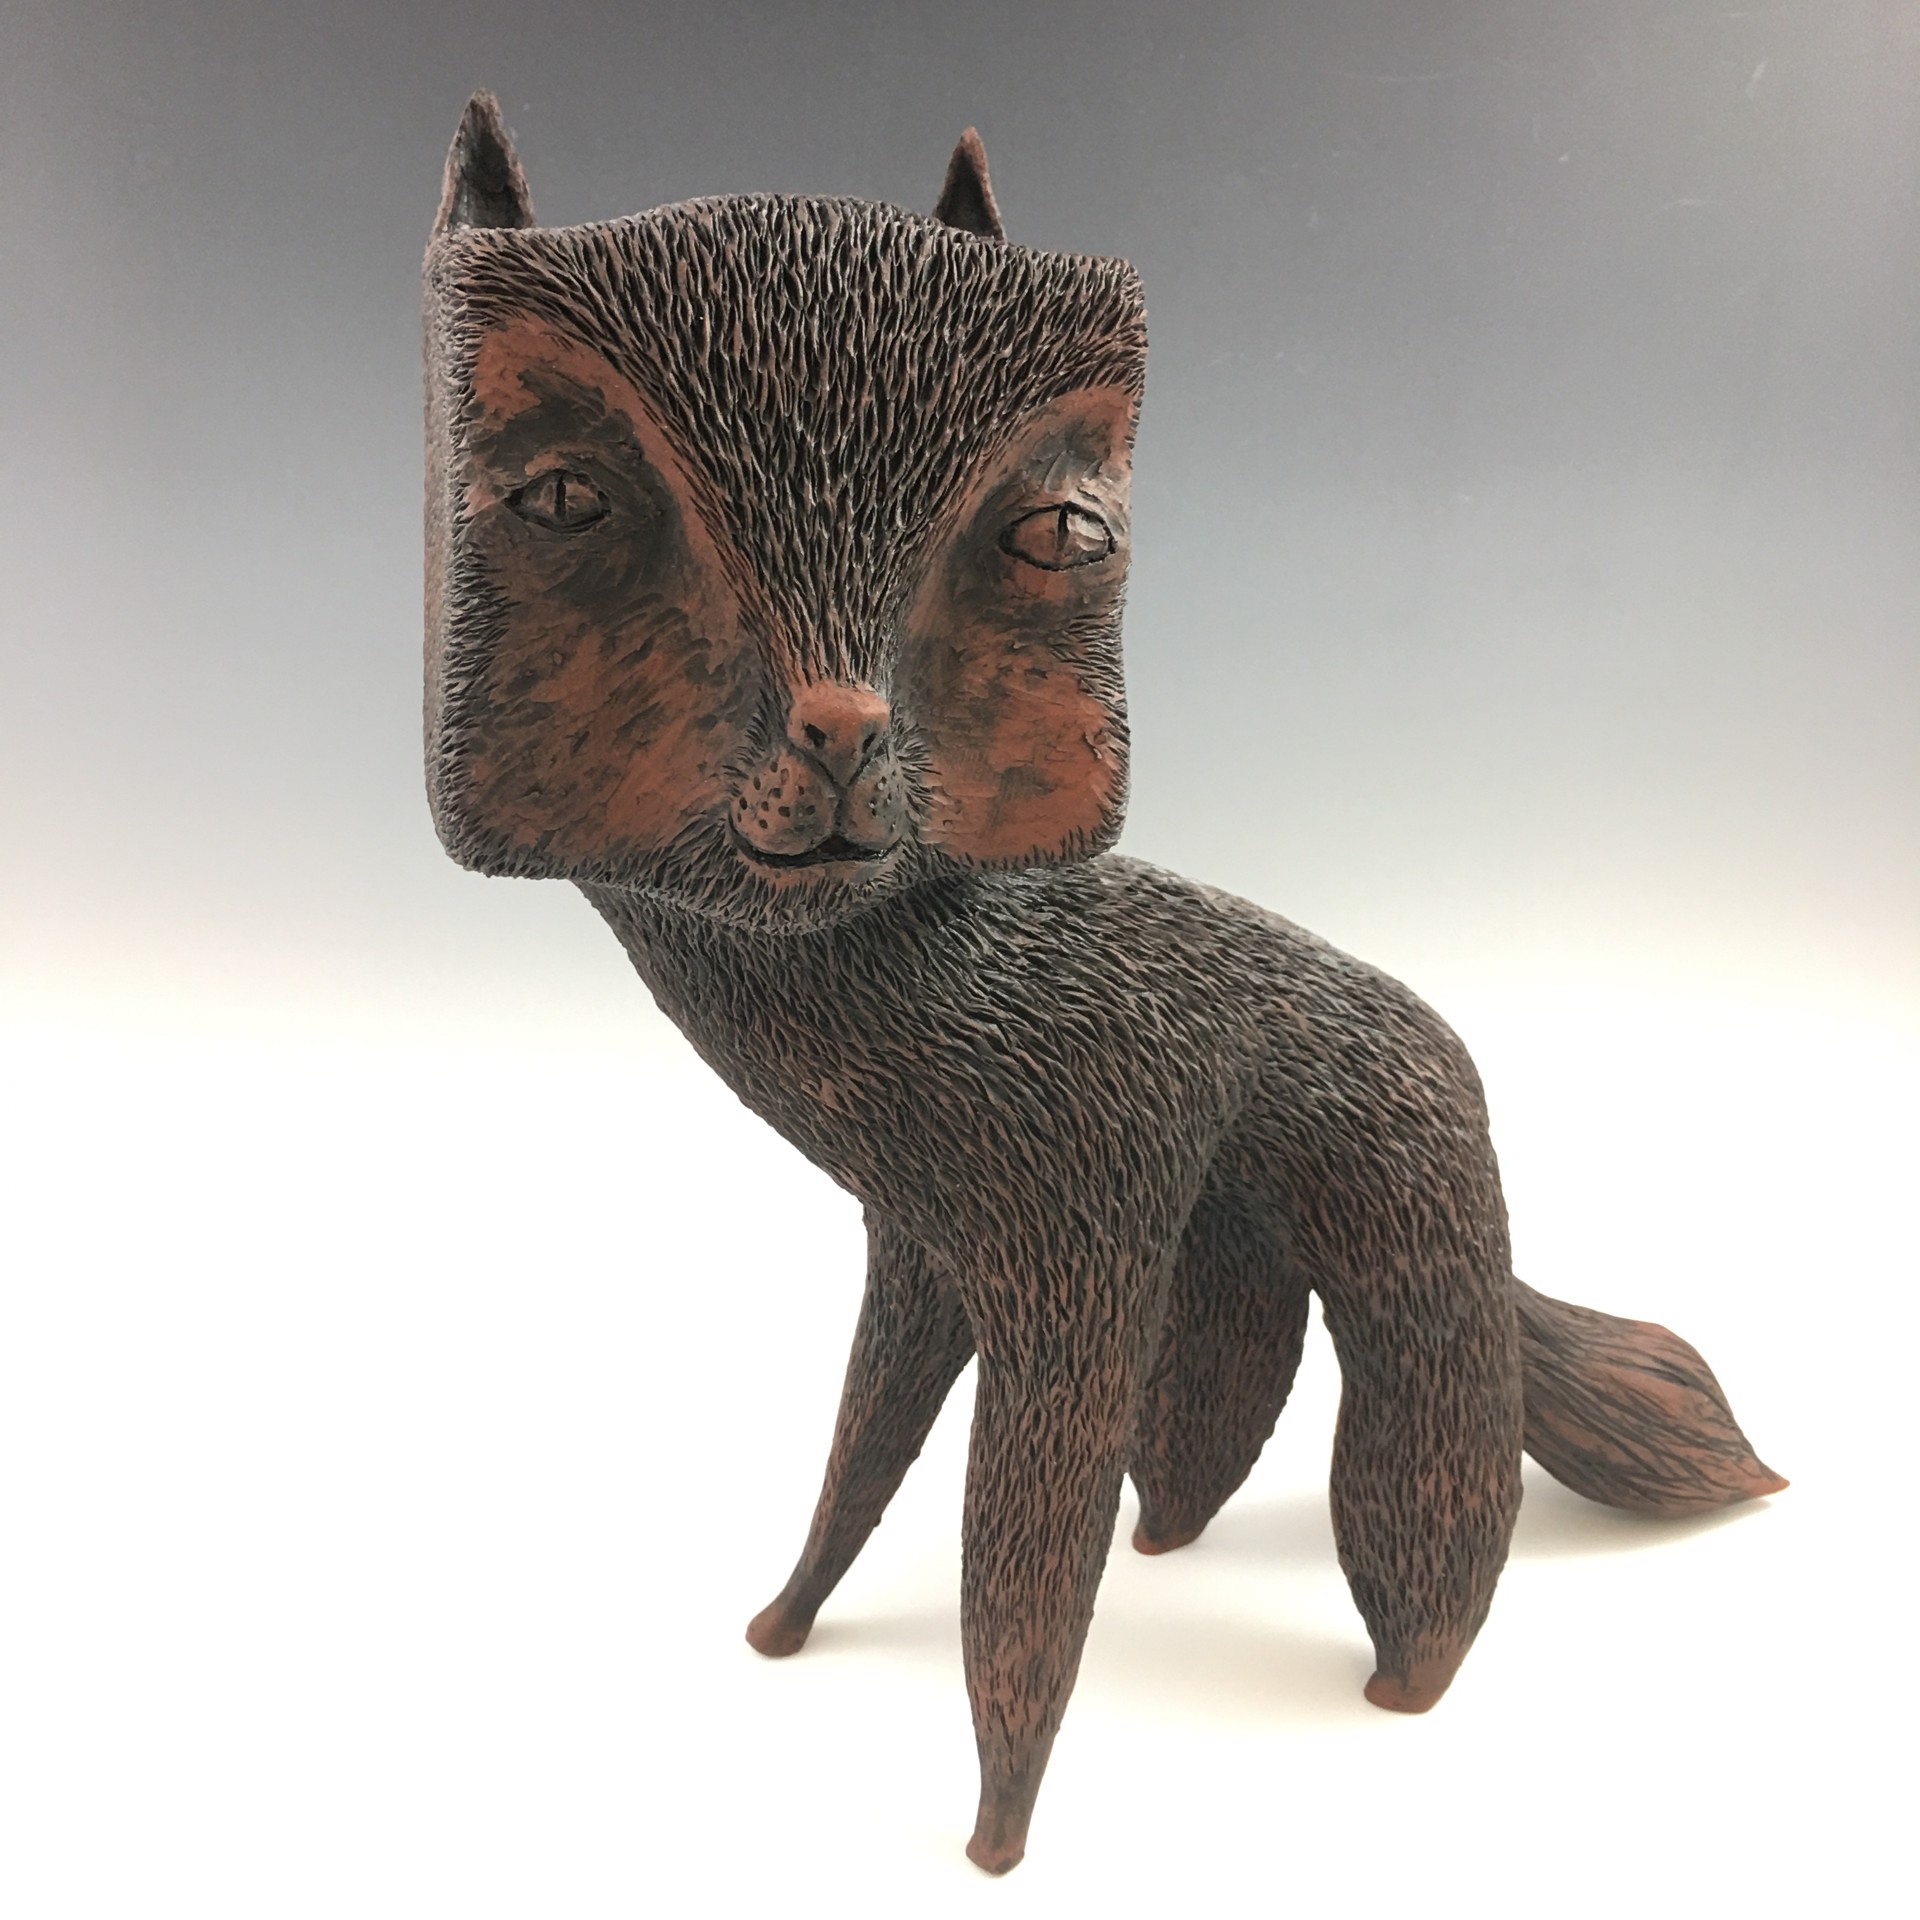 Squareheaded Cat by Christopher St. John